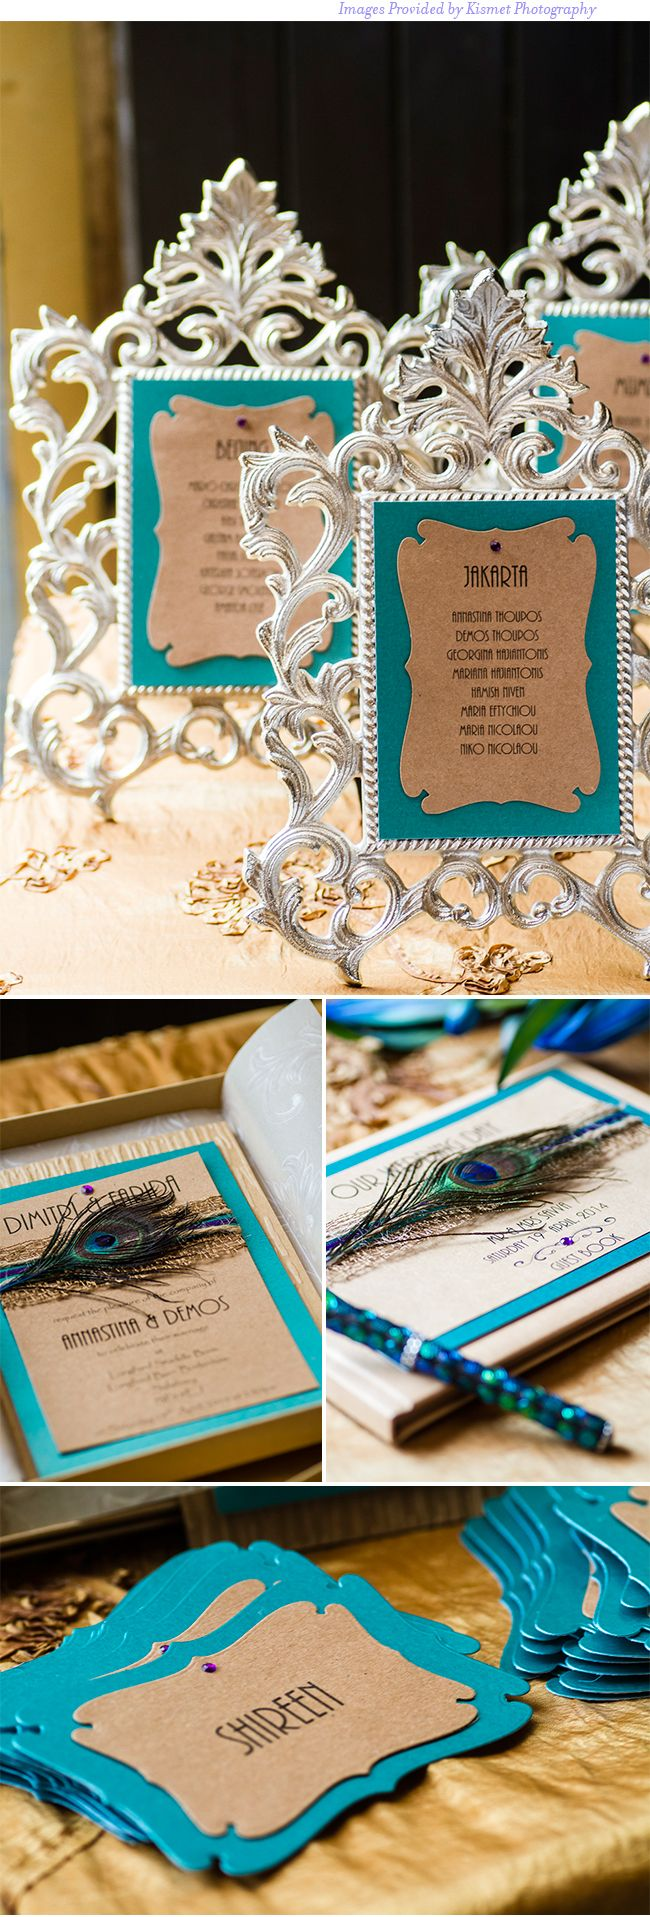 Teal and Gold with Peacock Feather Detailing | Fusion Wedding Details Using Eastern Influences and Antique Wood | Kismet Photography